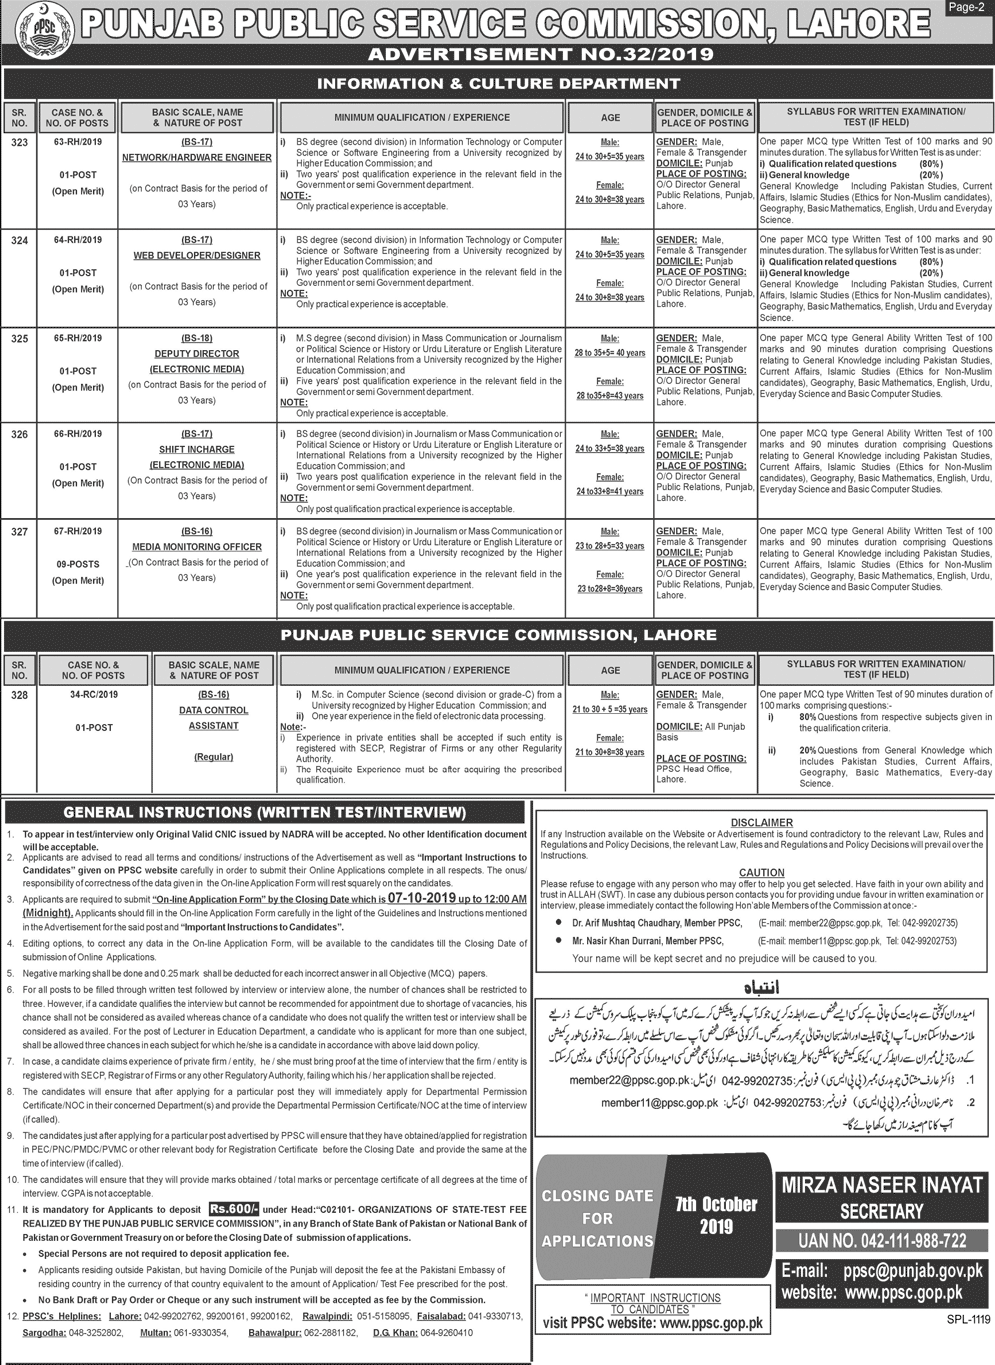 PPSC Vacancies 2019 Advertisement